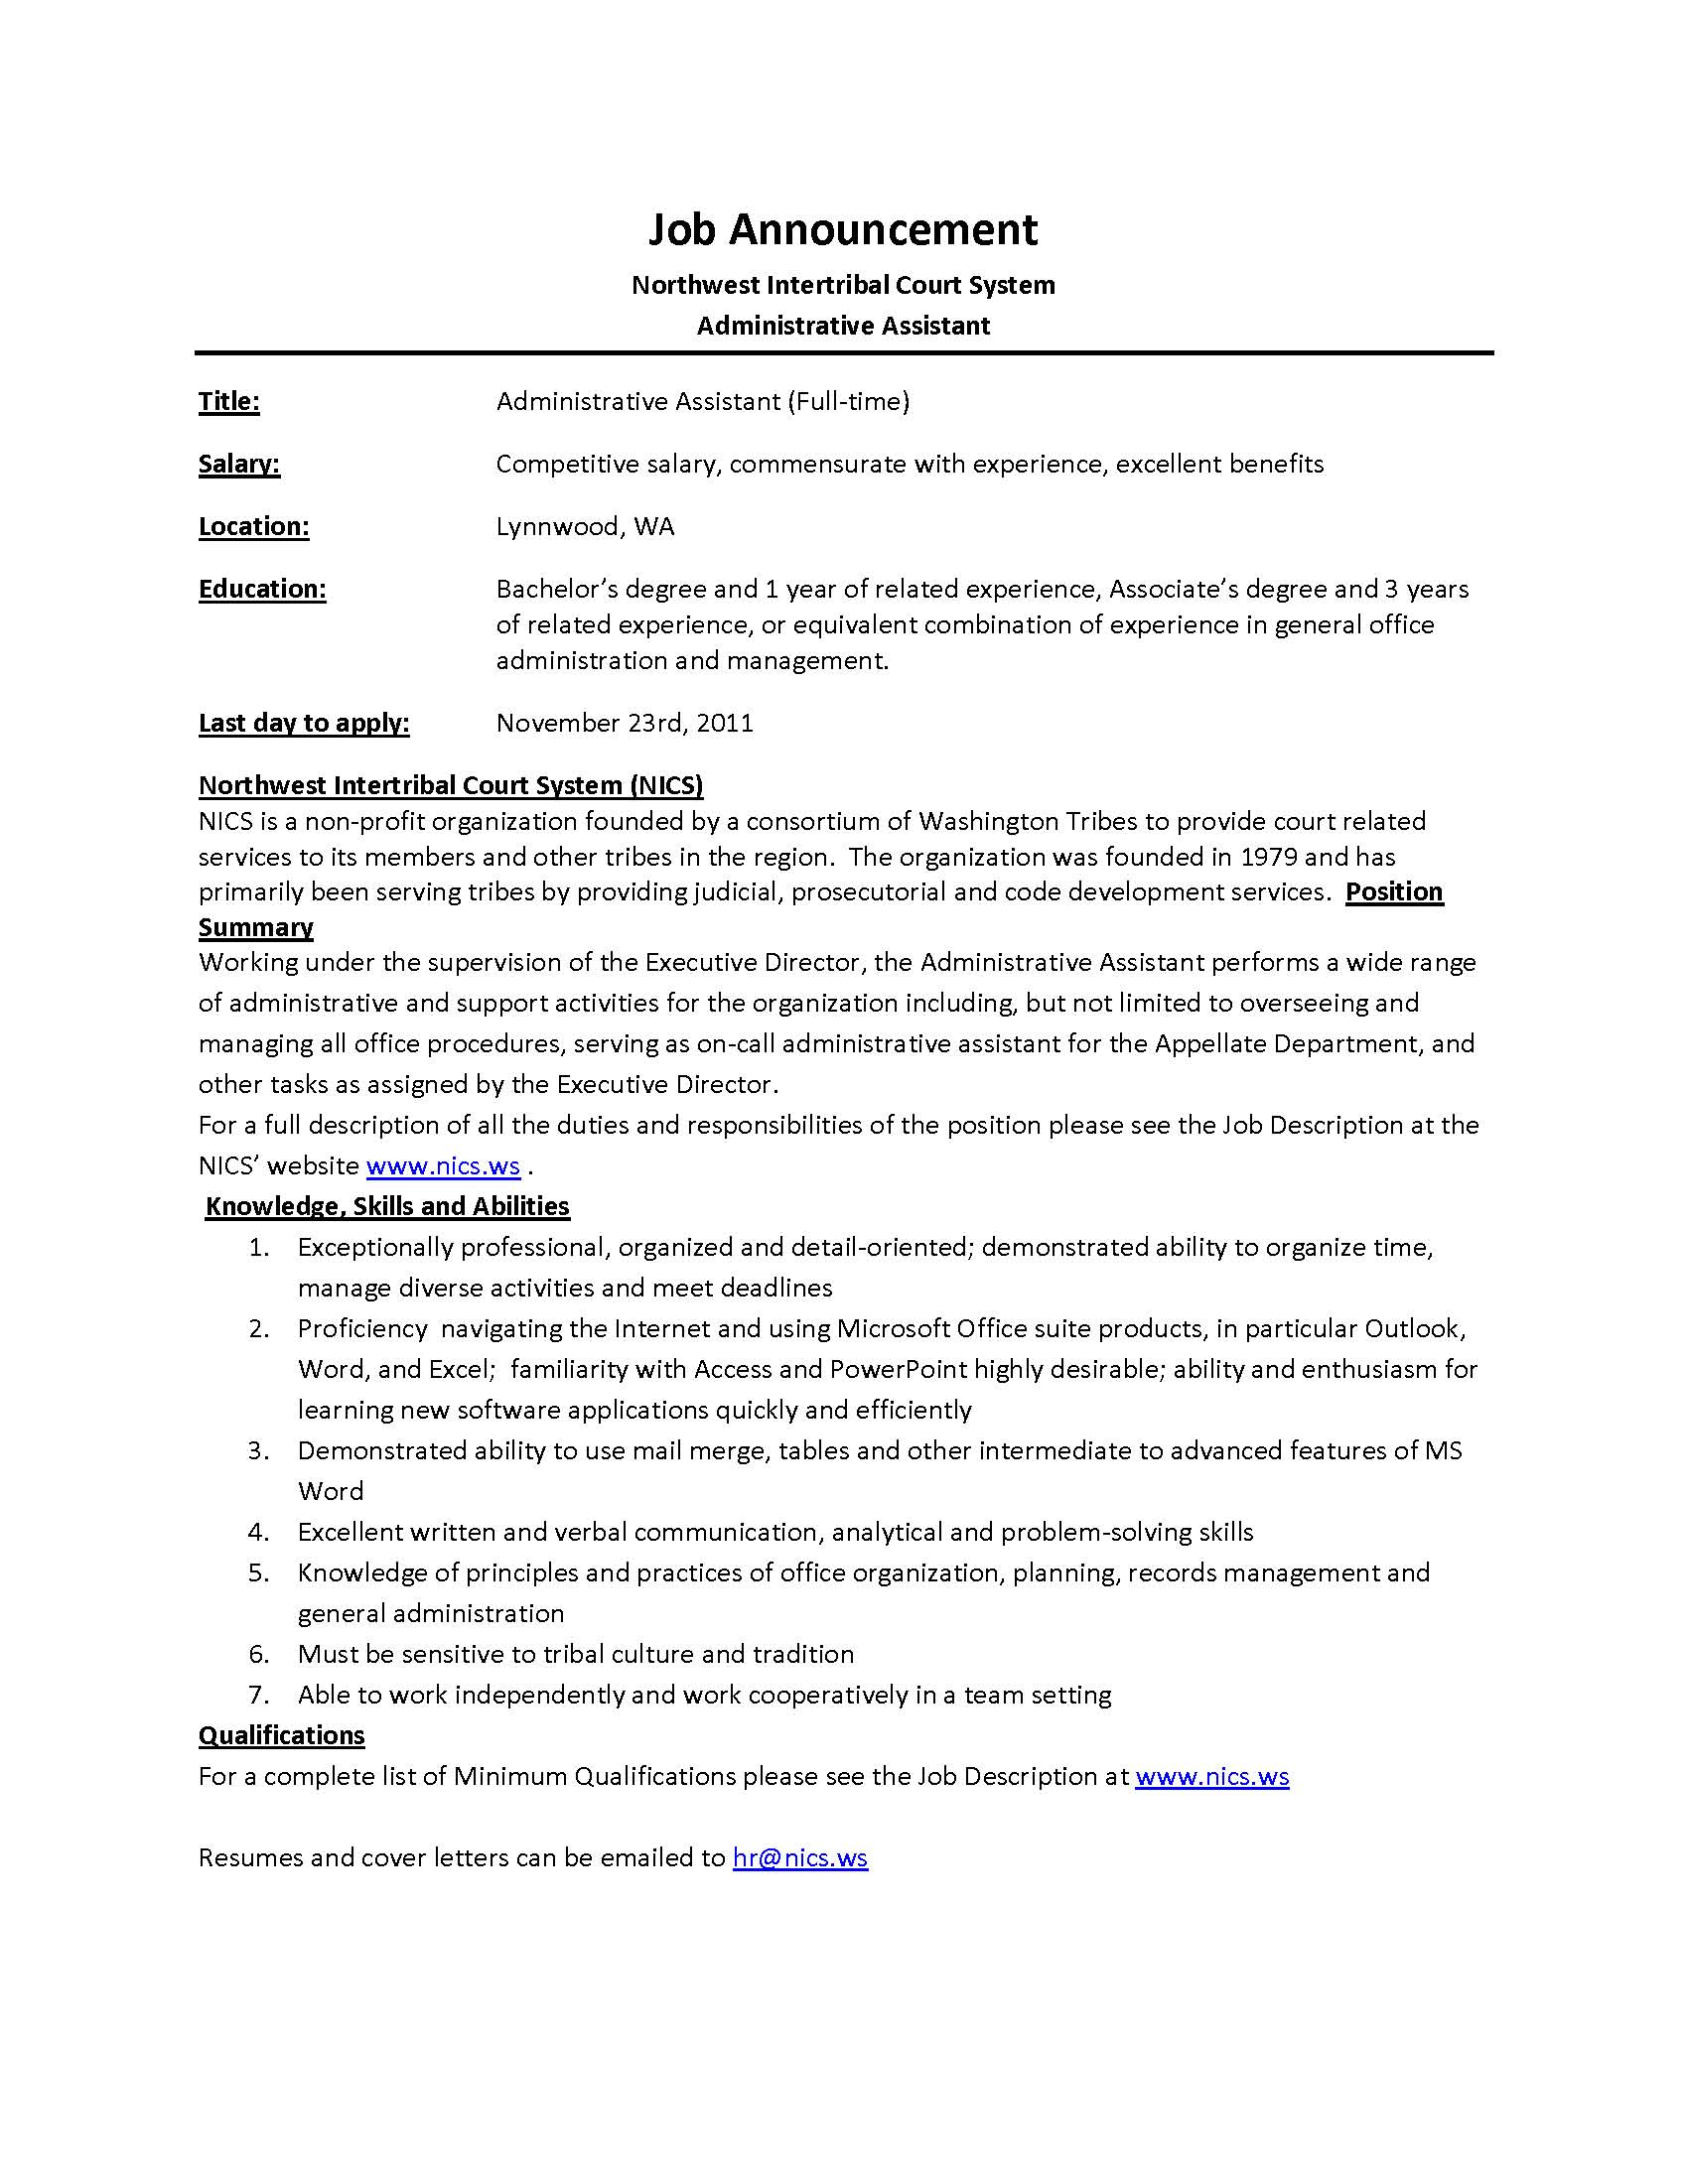 Sample Resumes For Administrative Assistant Positions Administrative Assistant Job Description Office Sample